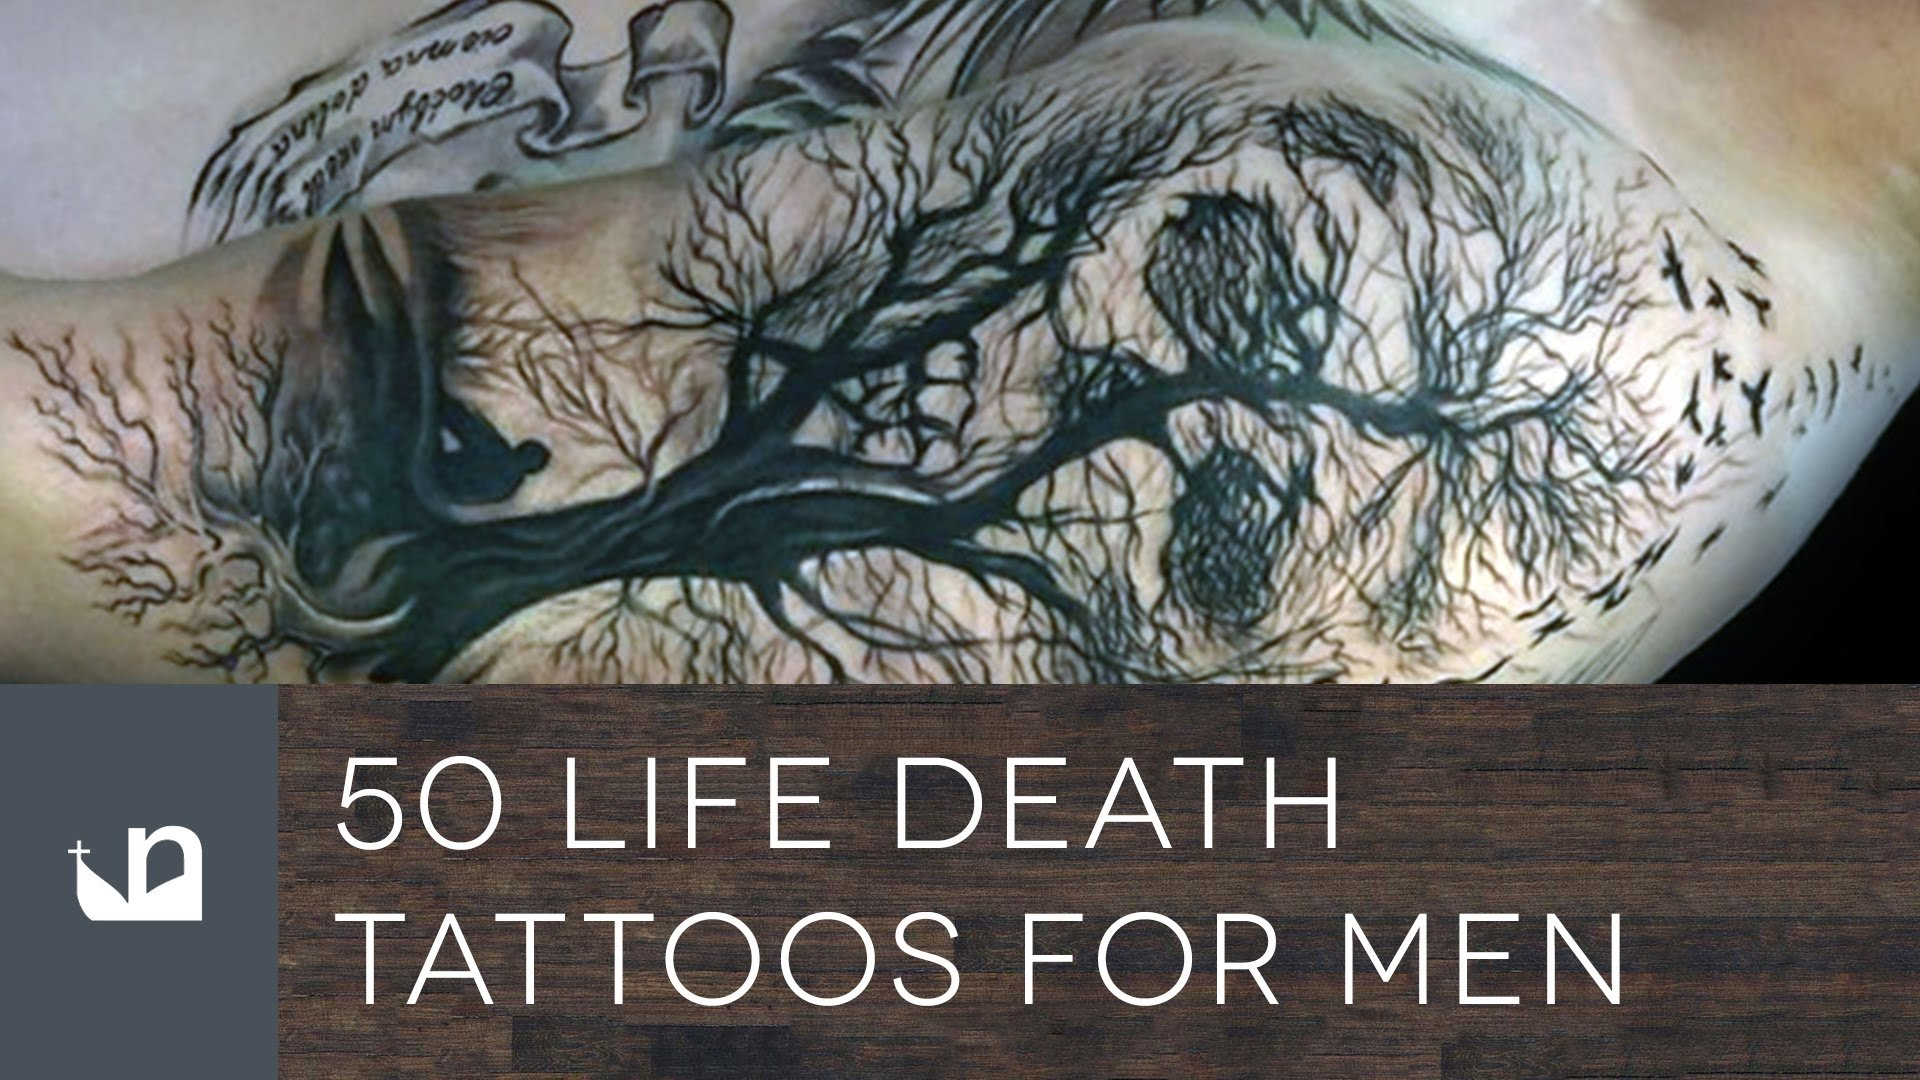 10 Stunning Life And Death Tattoo Ideas 50 life death tattoos for men youtube 2020